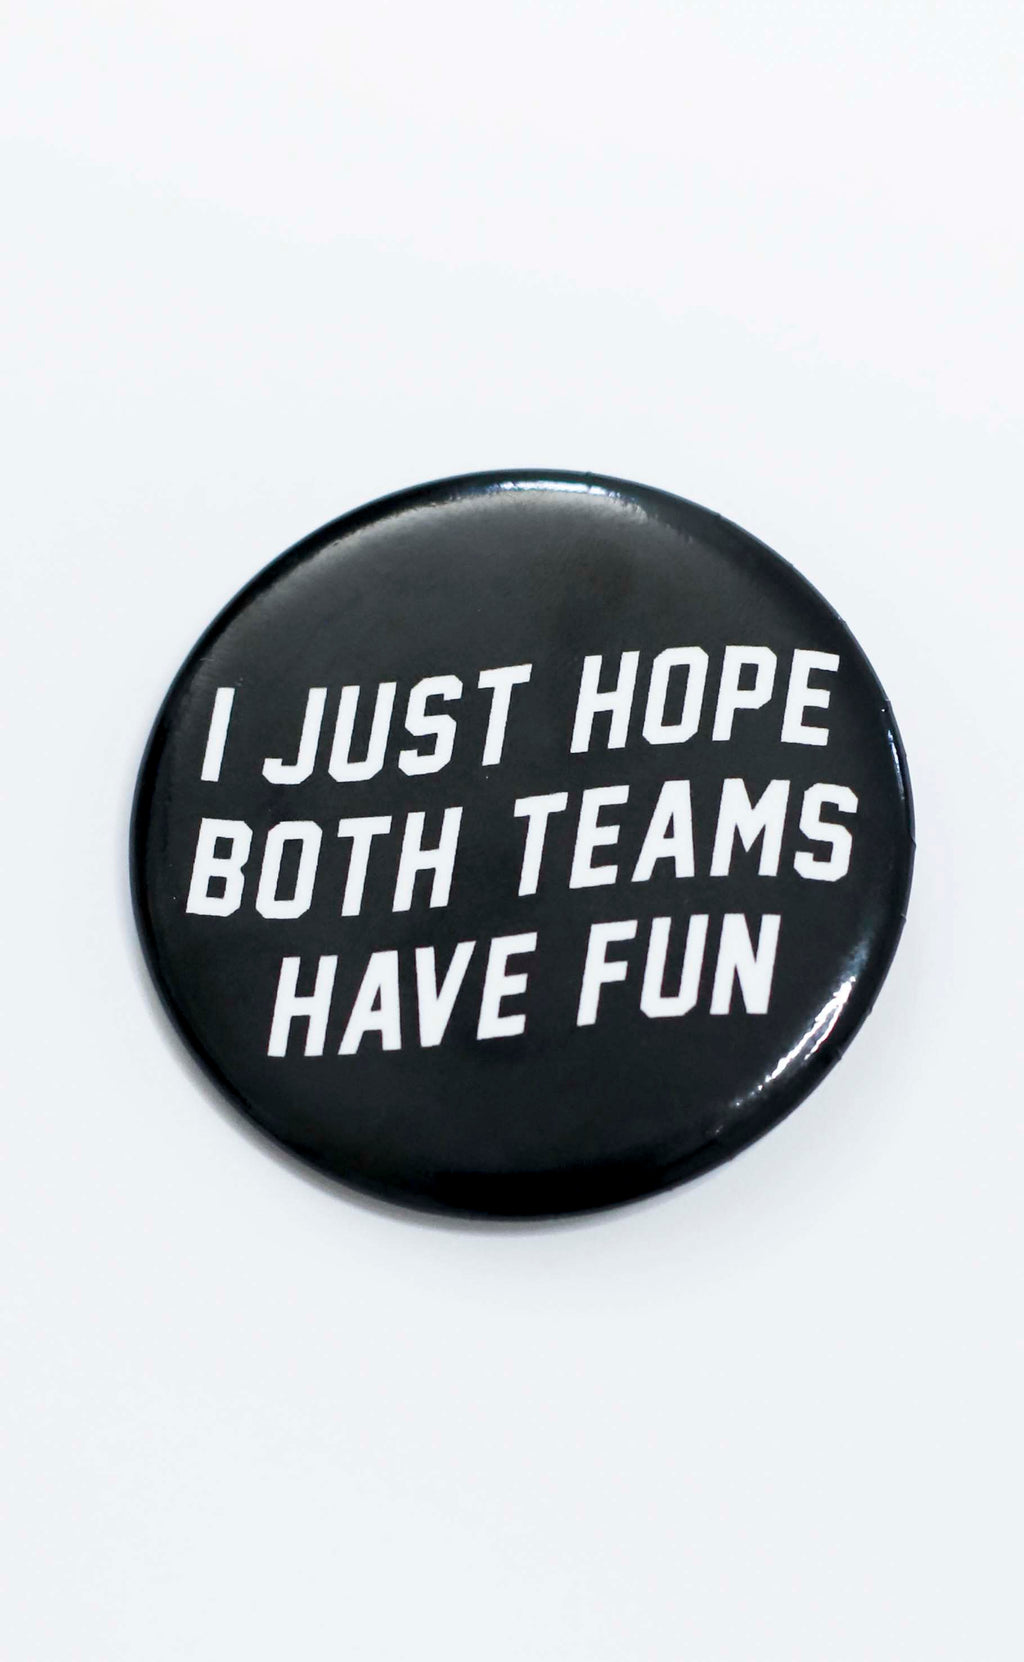 both teams have fun button